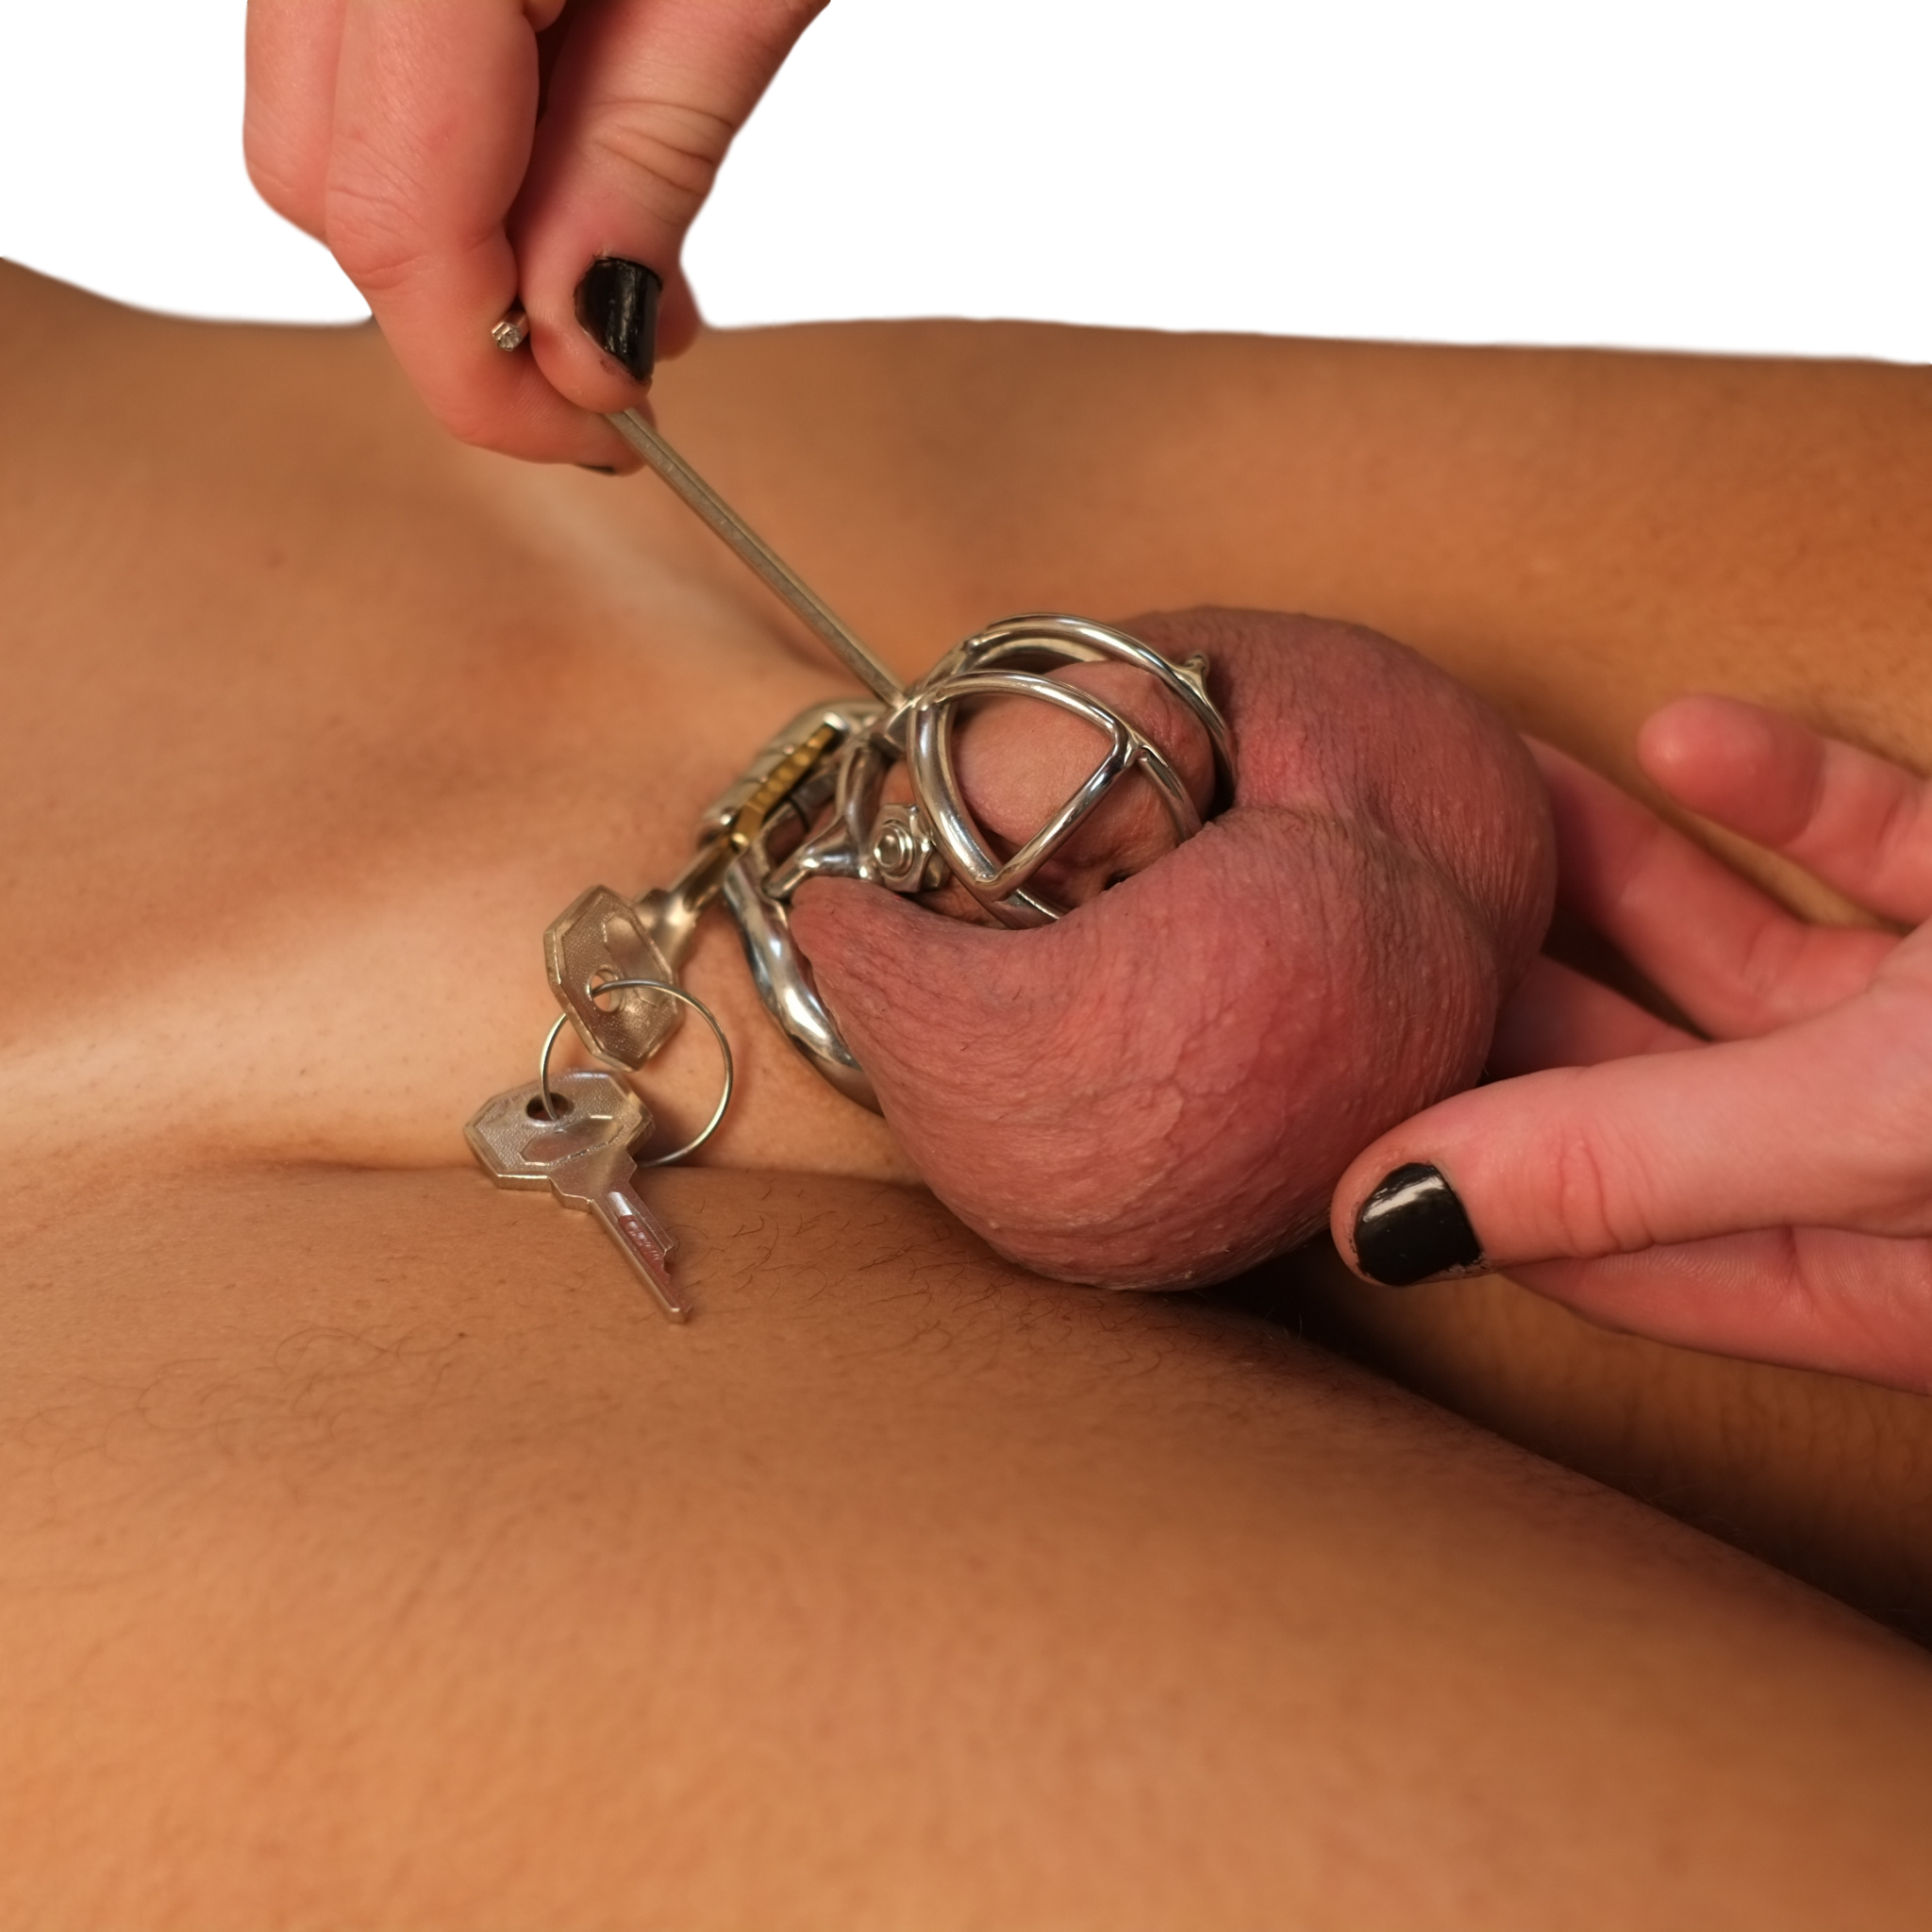 Cage chastity